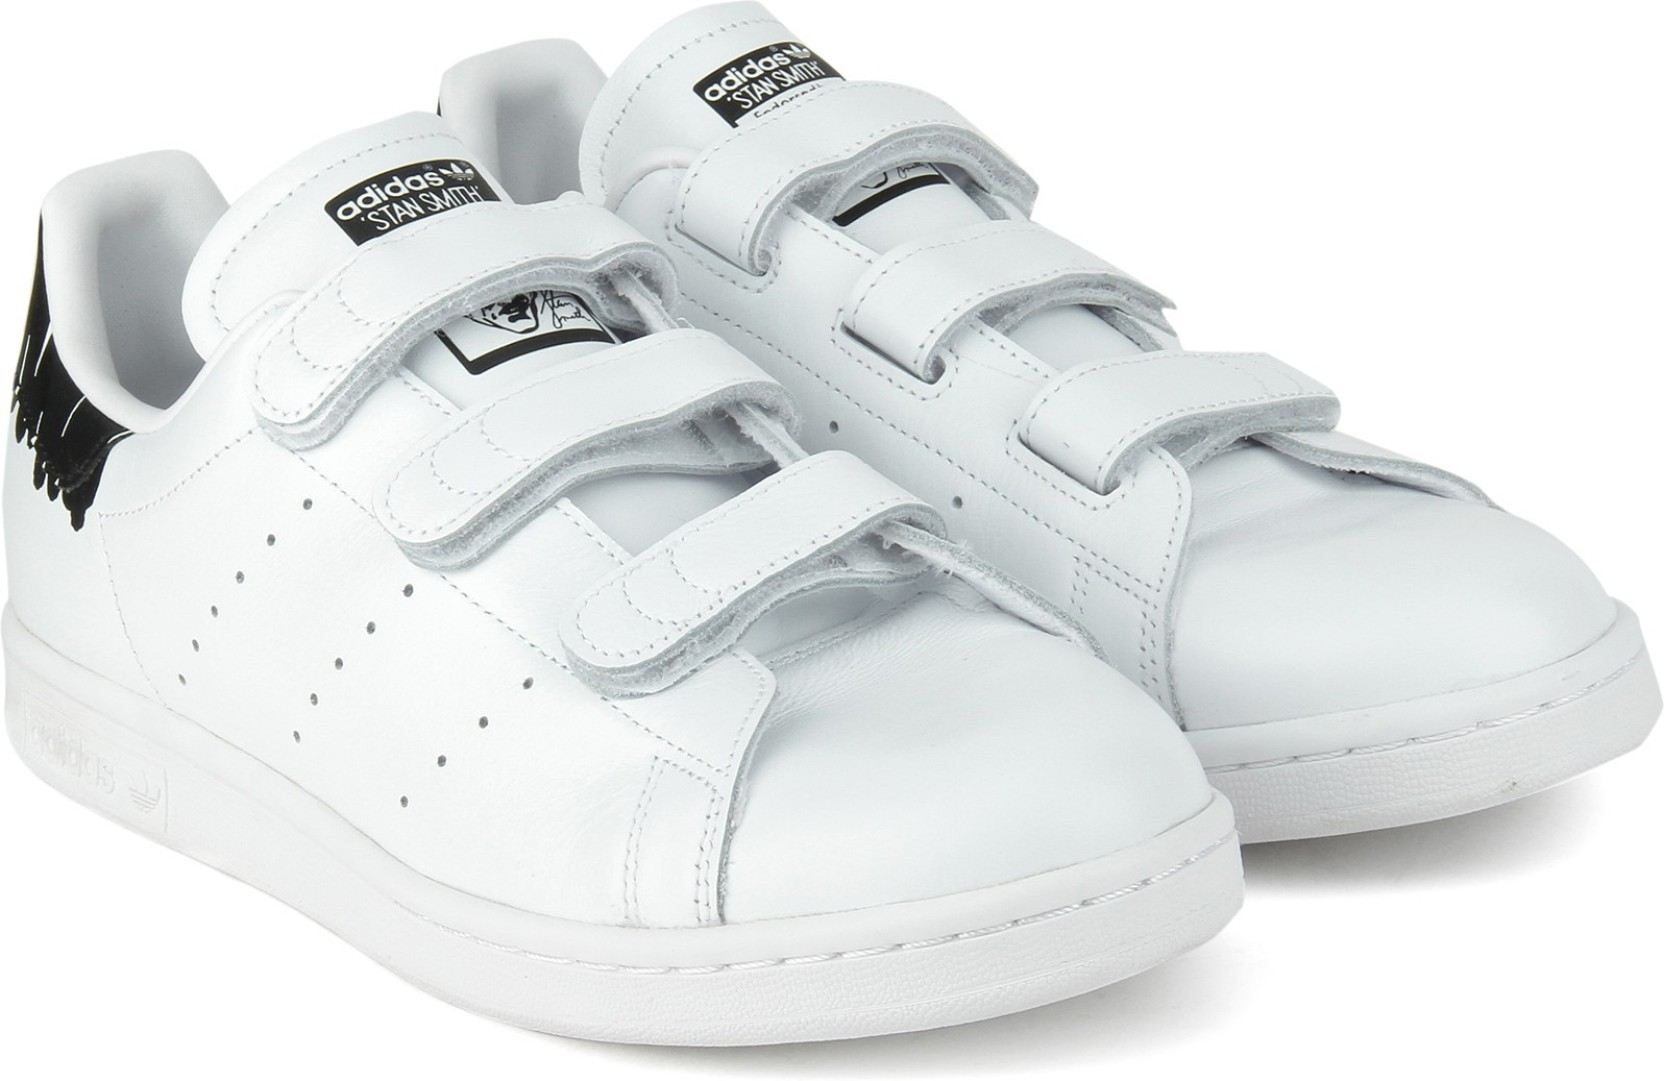 finest selection 56f25 15d86 ADIDAS ORIGINALS STAN SMITH CF W Sneakers For Women (Black, White)